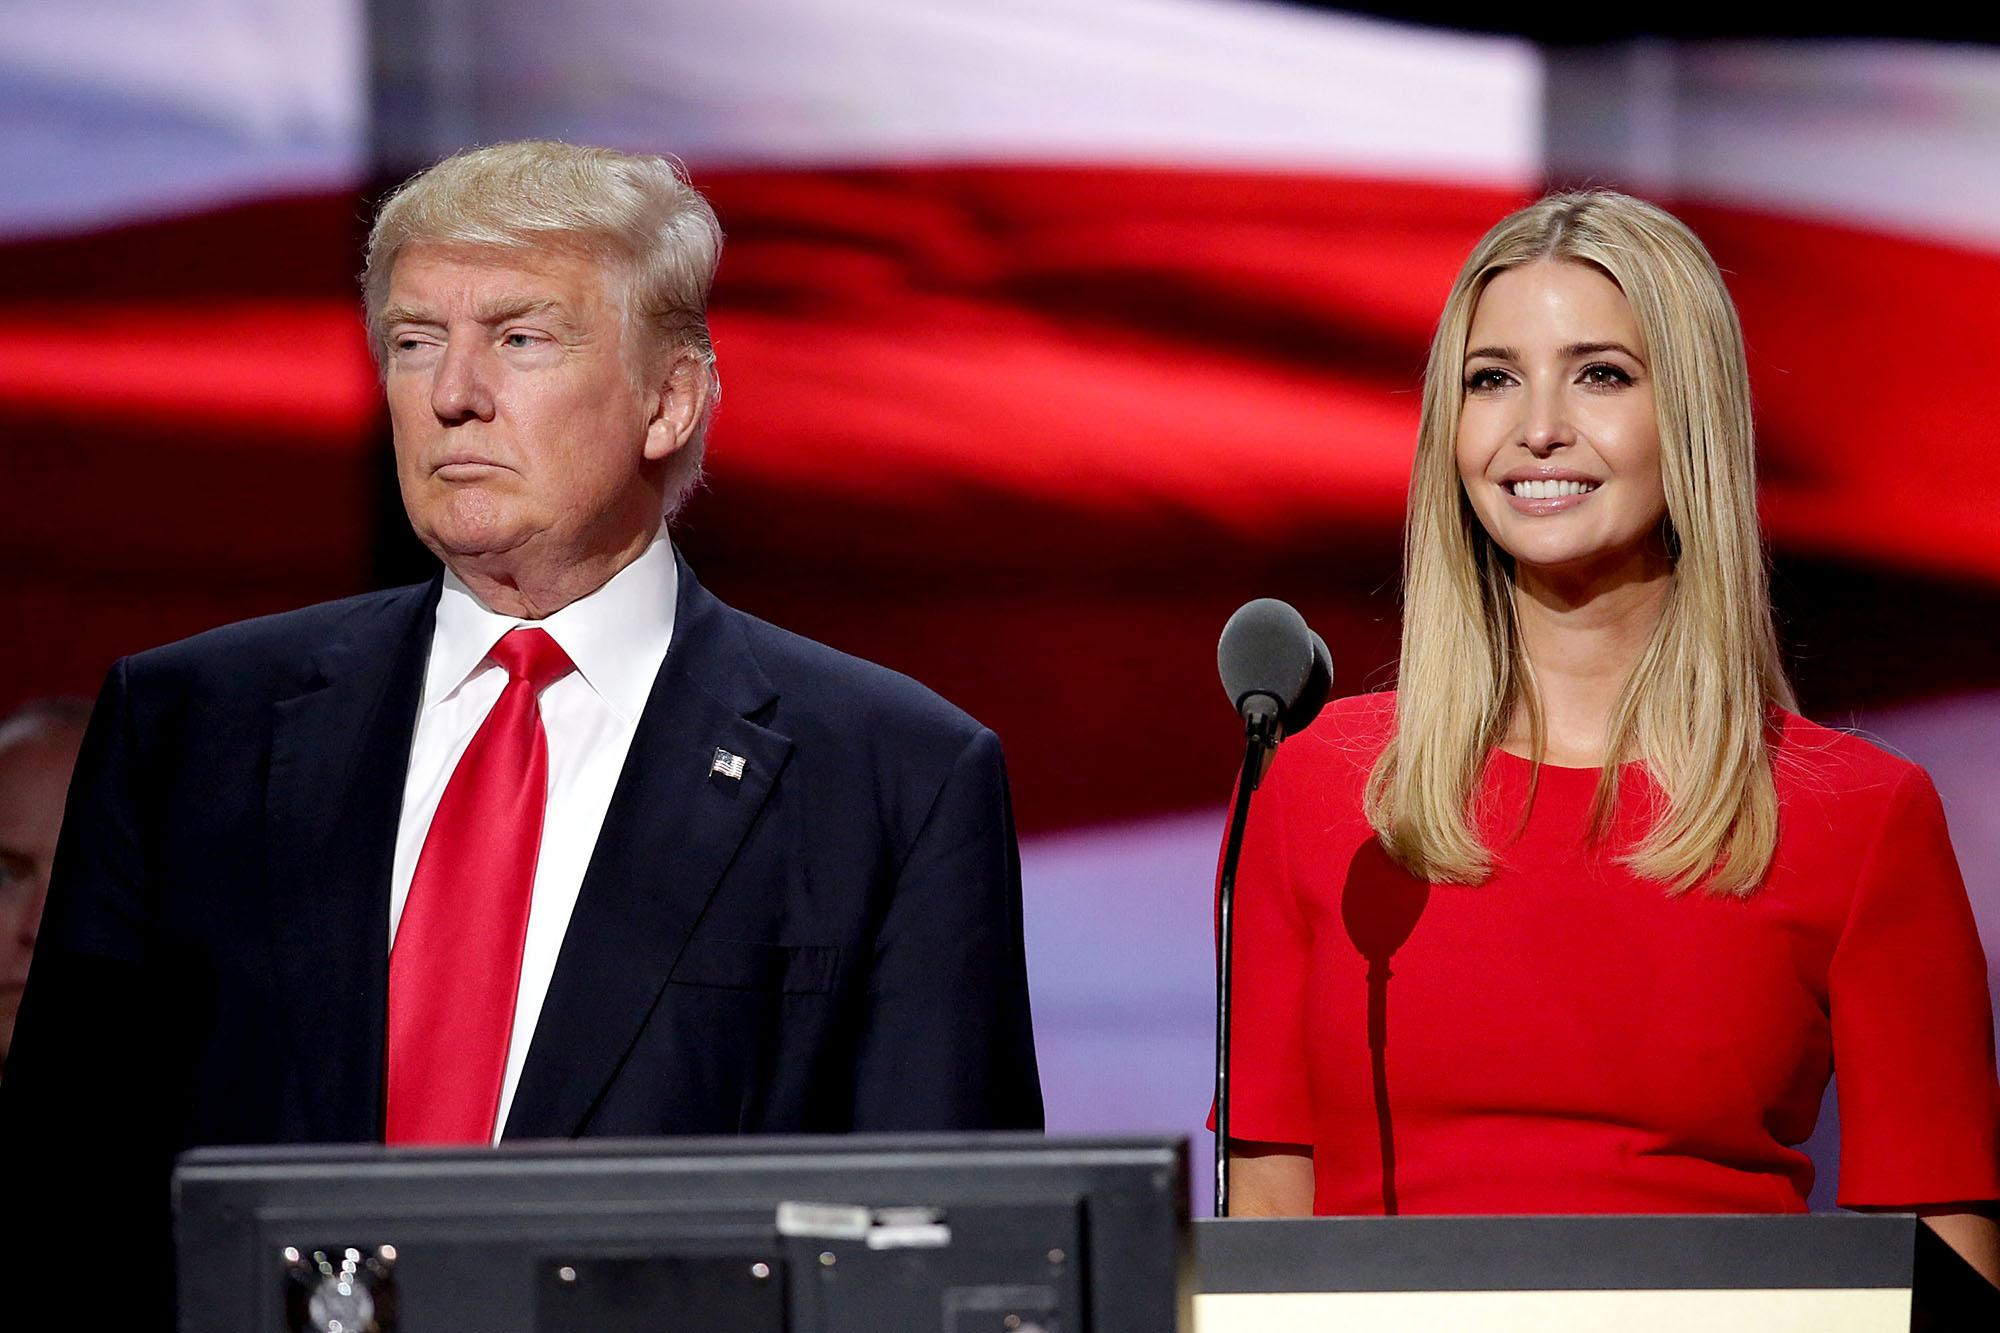 Donald Trump Mistakenly Tweets to the Wrong Ivanka — and Receives a Stinging Response